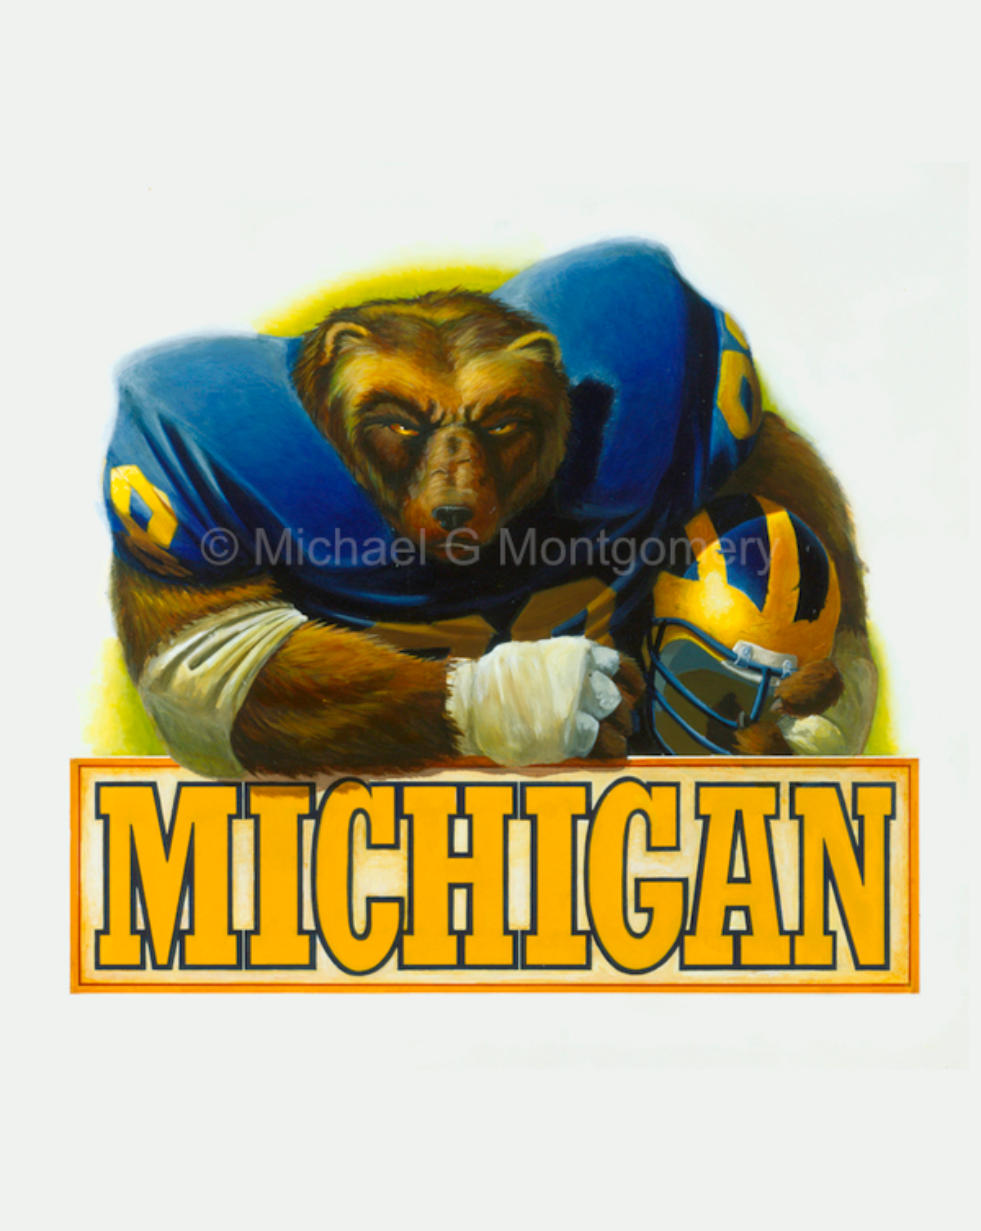 A tough looking Michigan Wolverine in football equipment